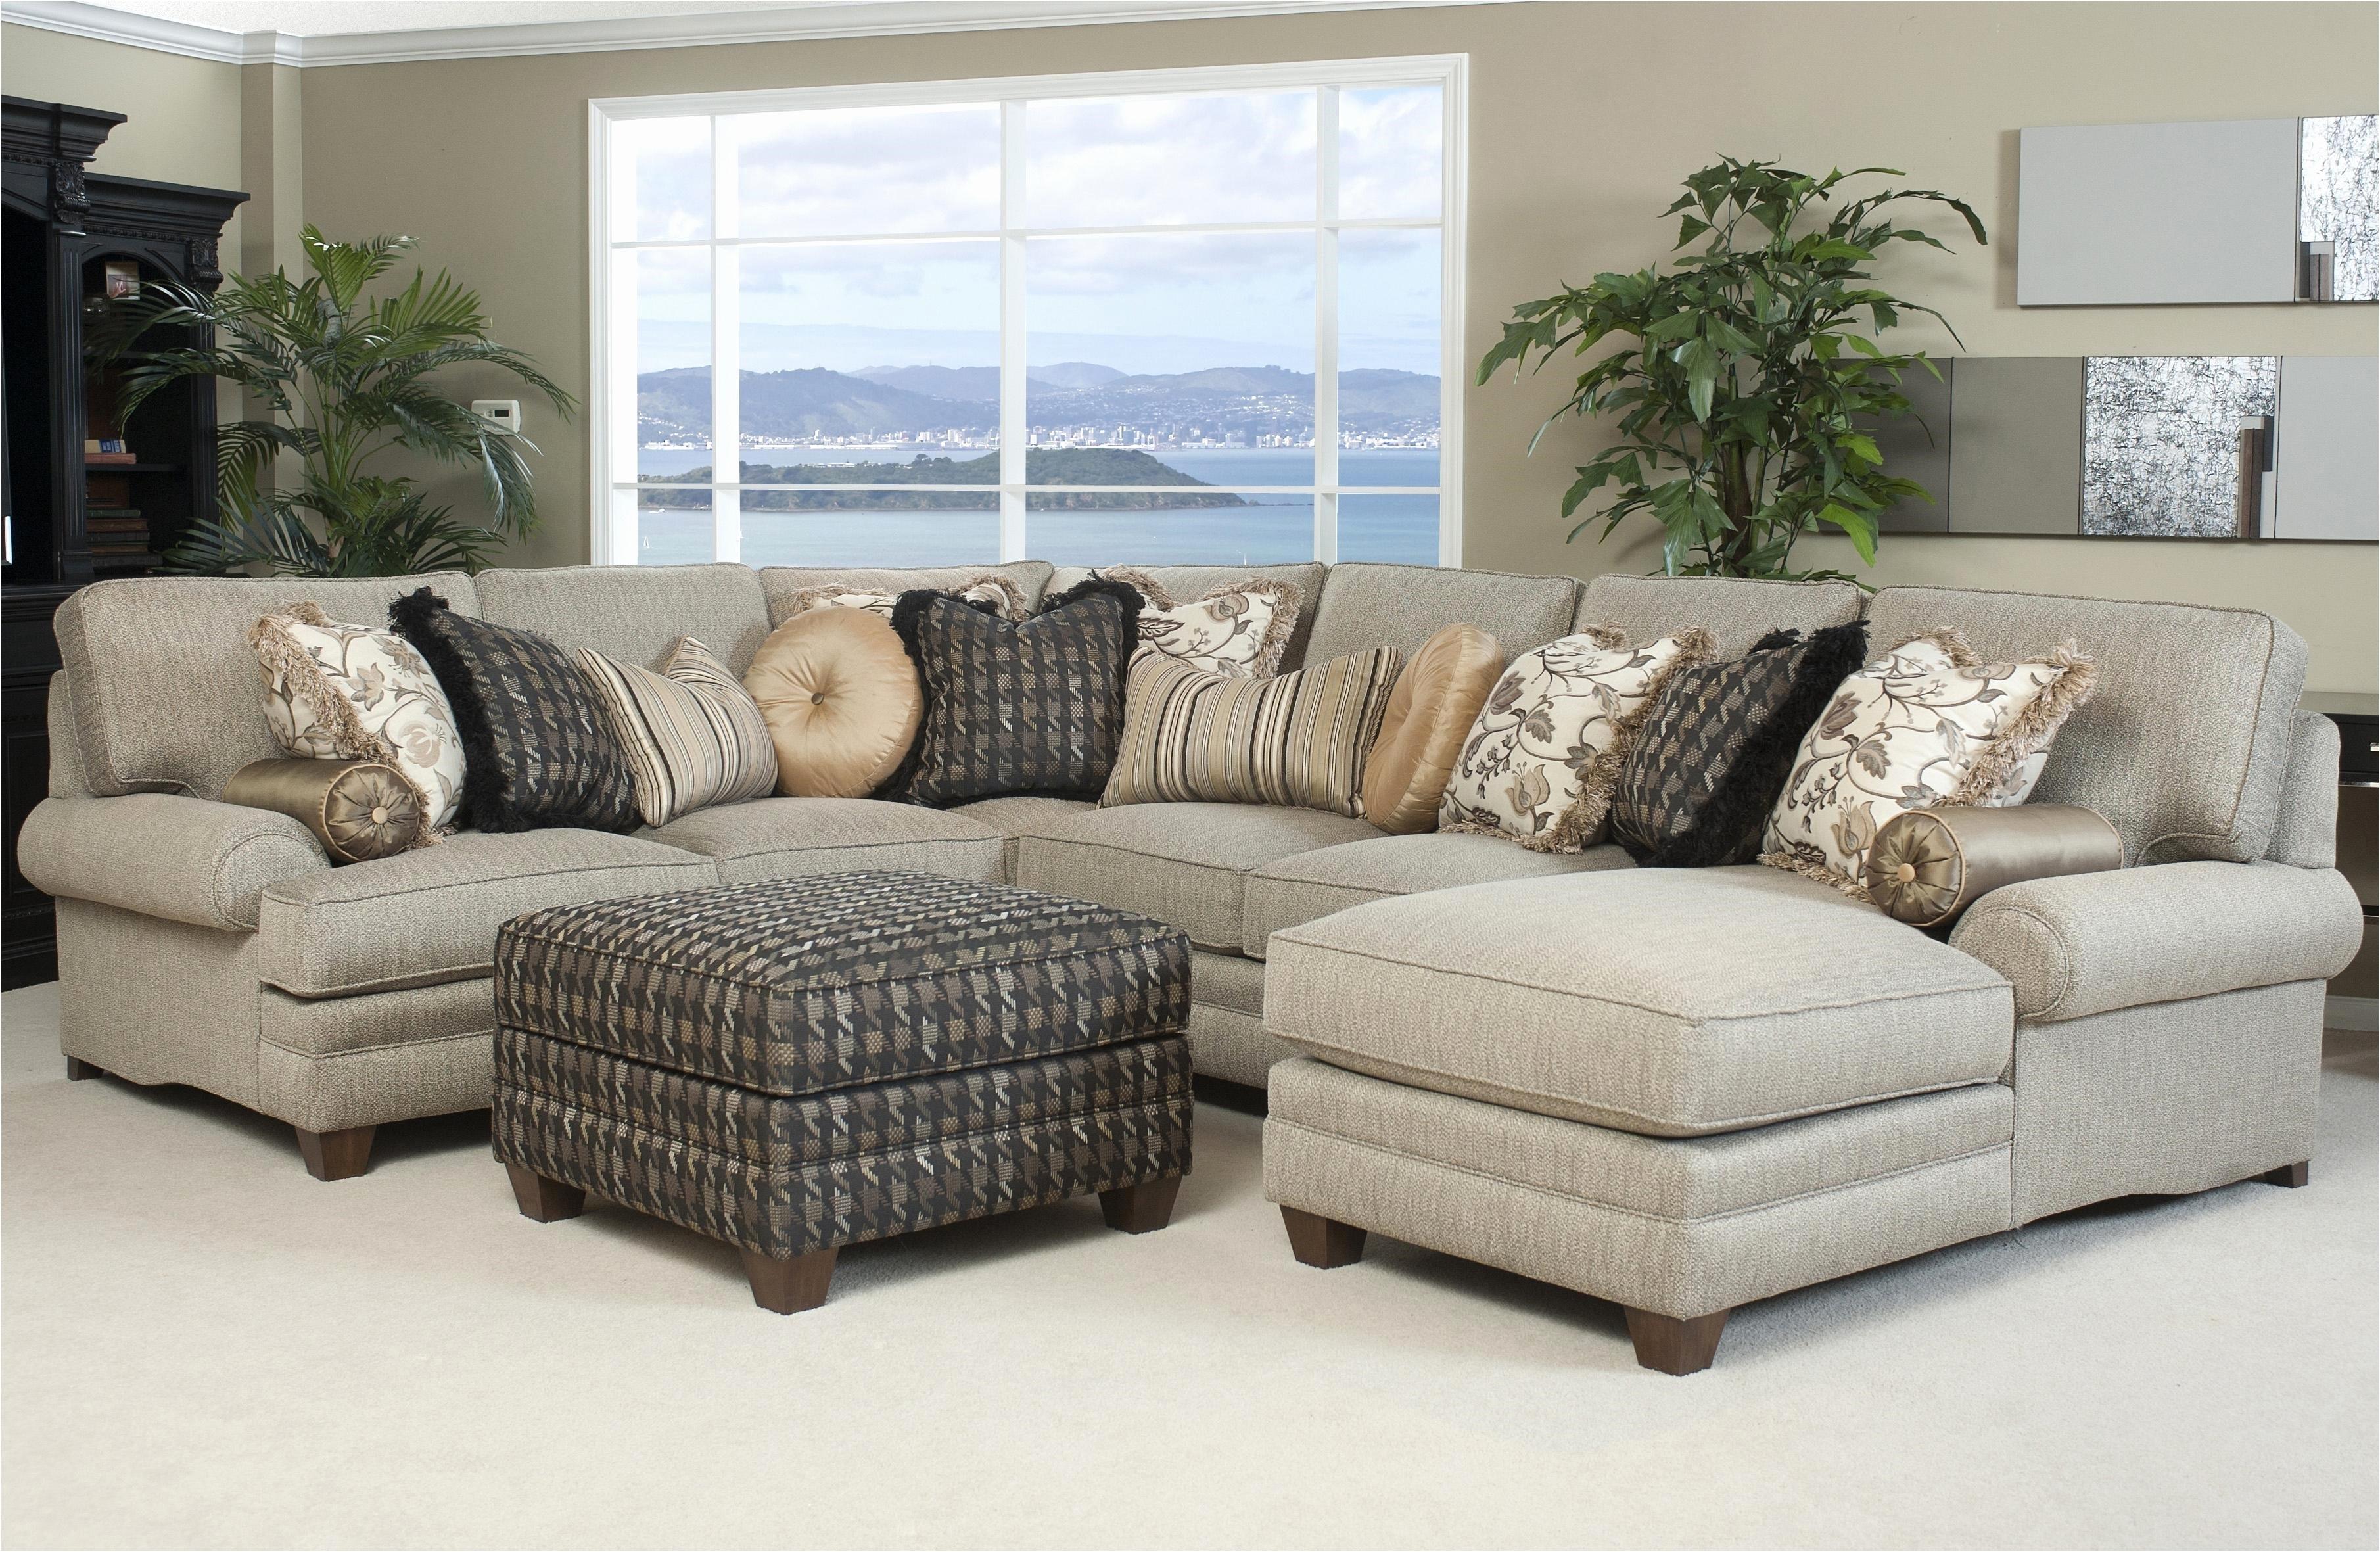 2018 Sofa: Surprising Sectional Sofas Under $500 Cheap Sectionals Under Within Unique Sectional Sofas (View 11 of 15)